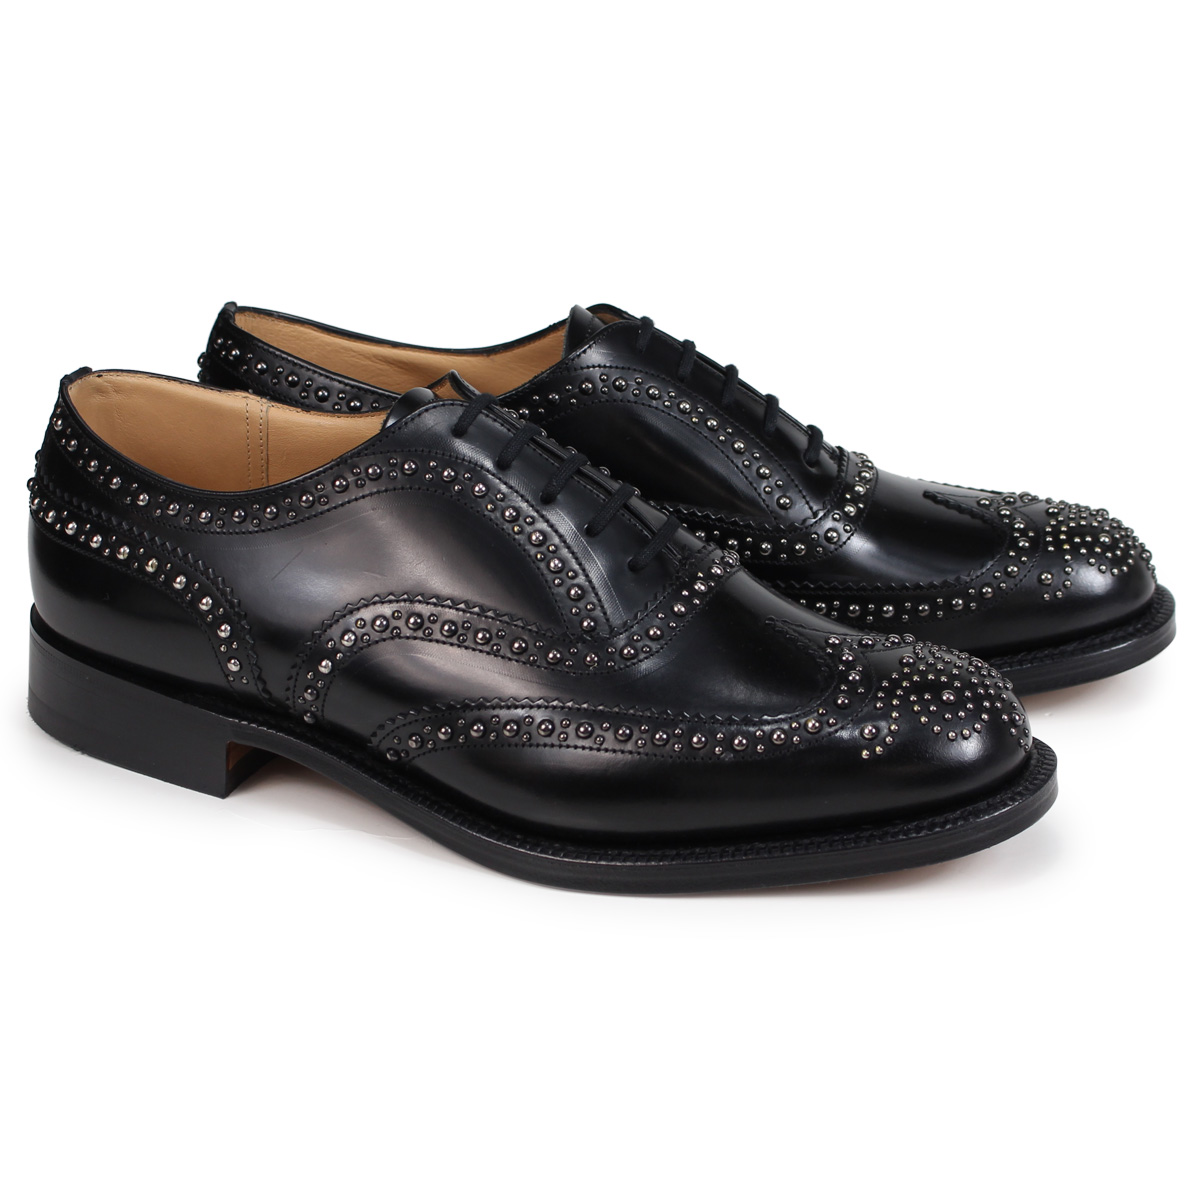 34eb5423b ... because a European and American celebrity and celebrity use it  habitually. The welt shoes of the church are made after a process of 250 by  the Goodyear ...